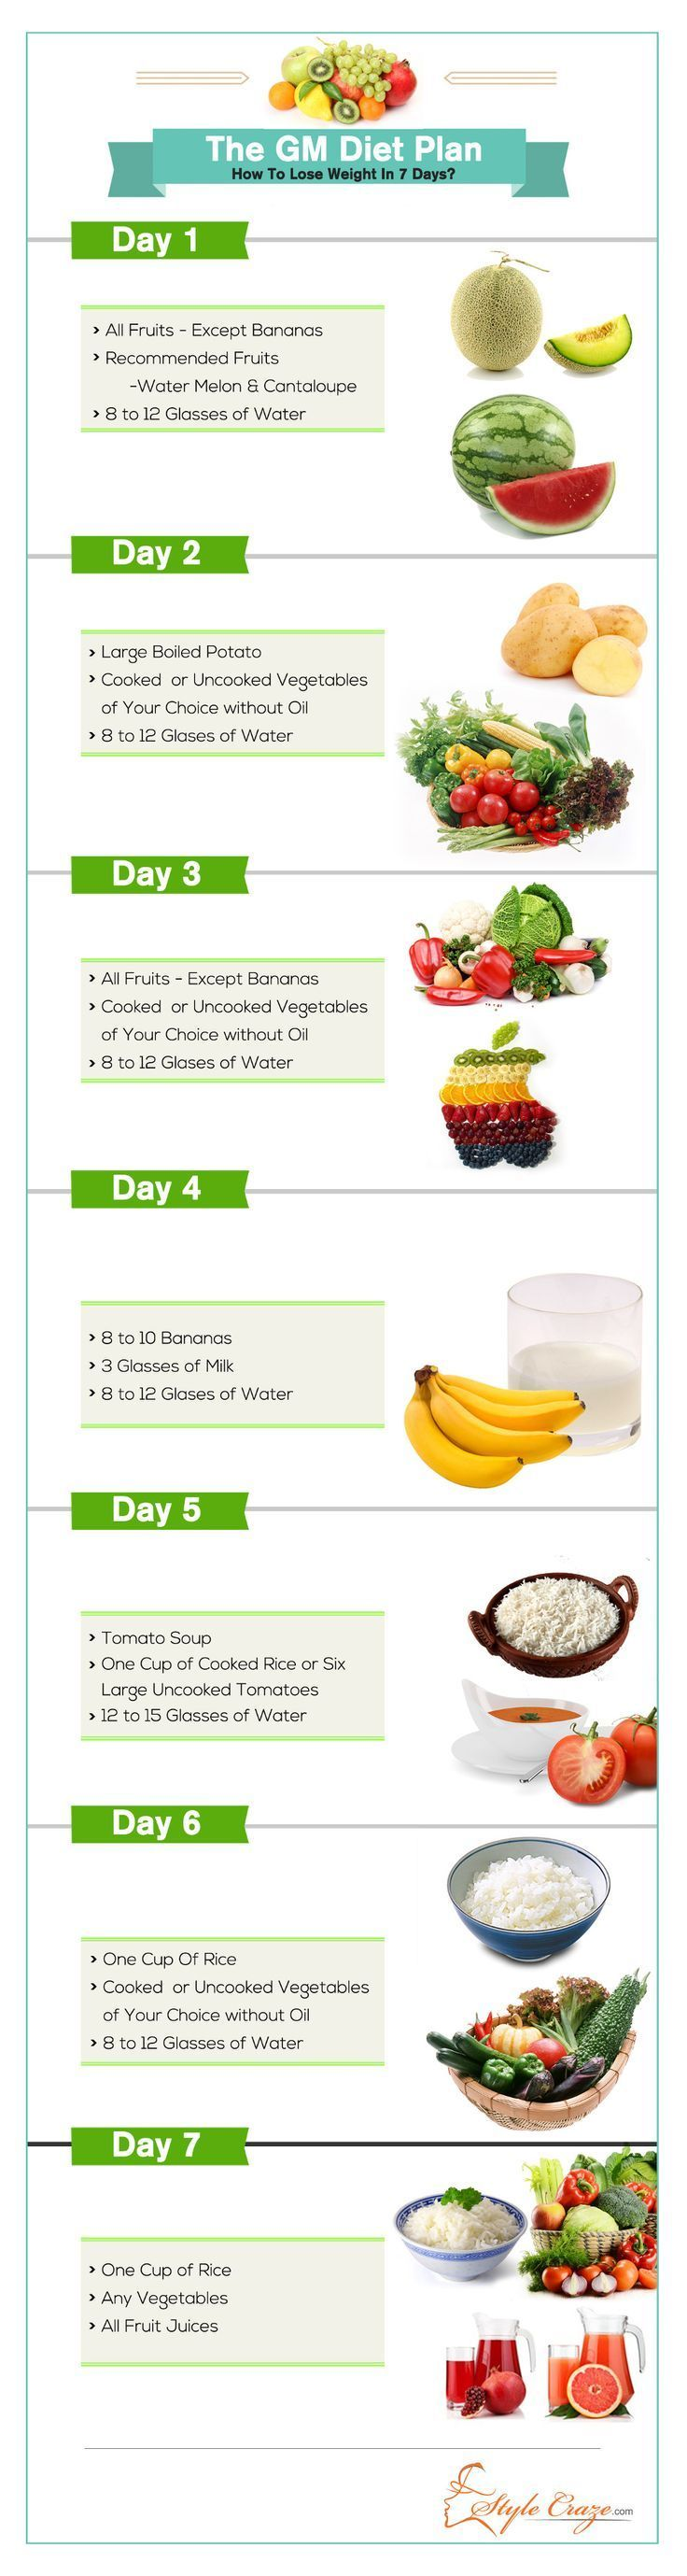 Best 25 7 day diet ideas on pinterest recipes with for General motors diet pdf